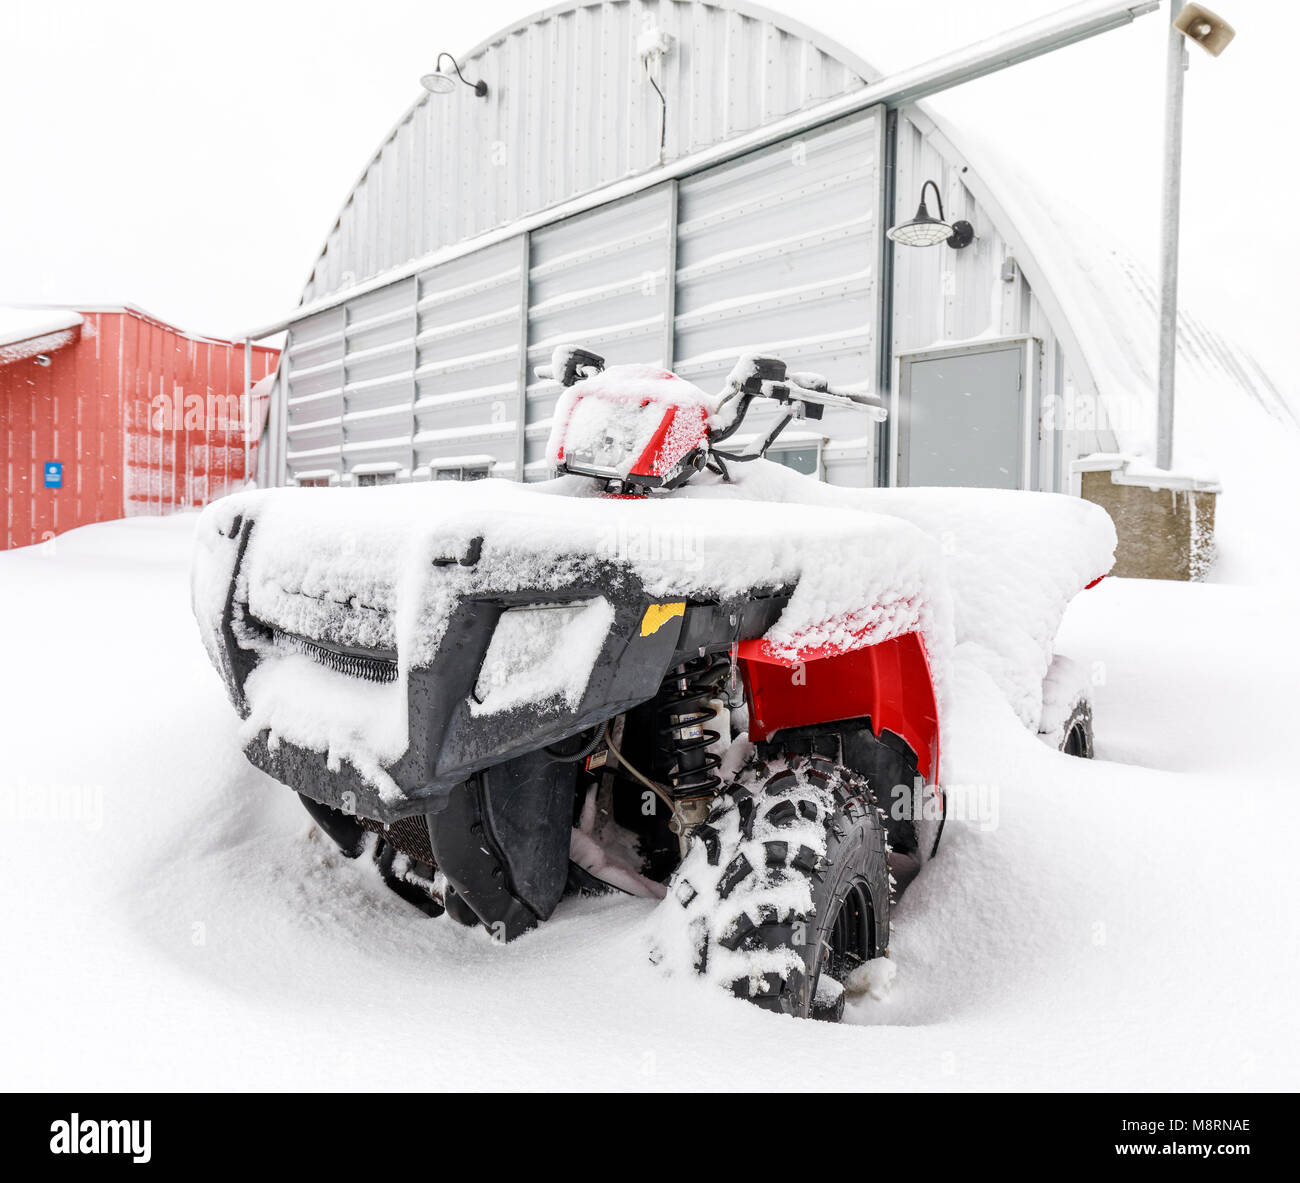 All Terrain Vehicle, 4 Wheeler ATV, in snow, Manitoba, Canada. - Stock Image